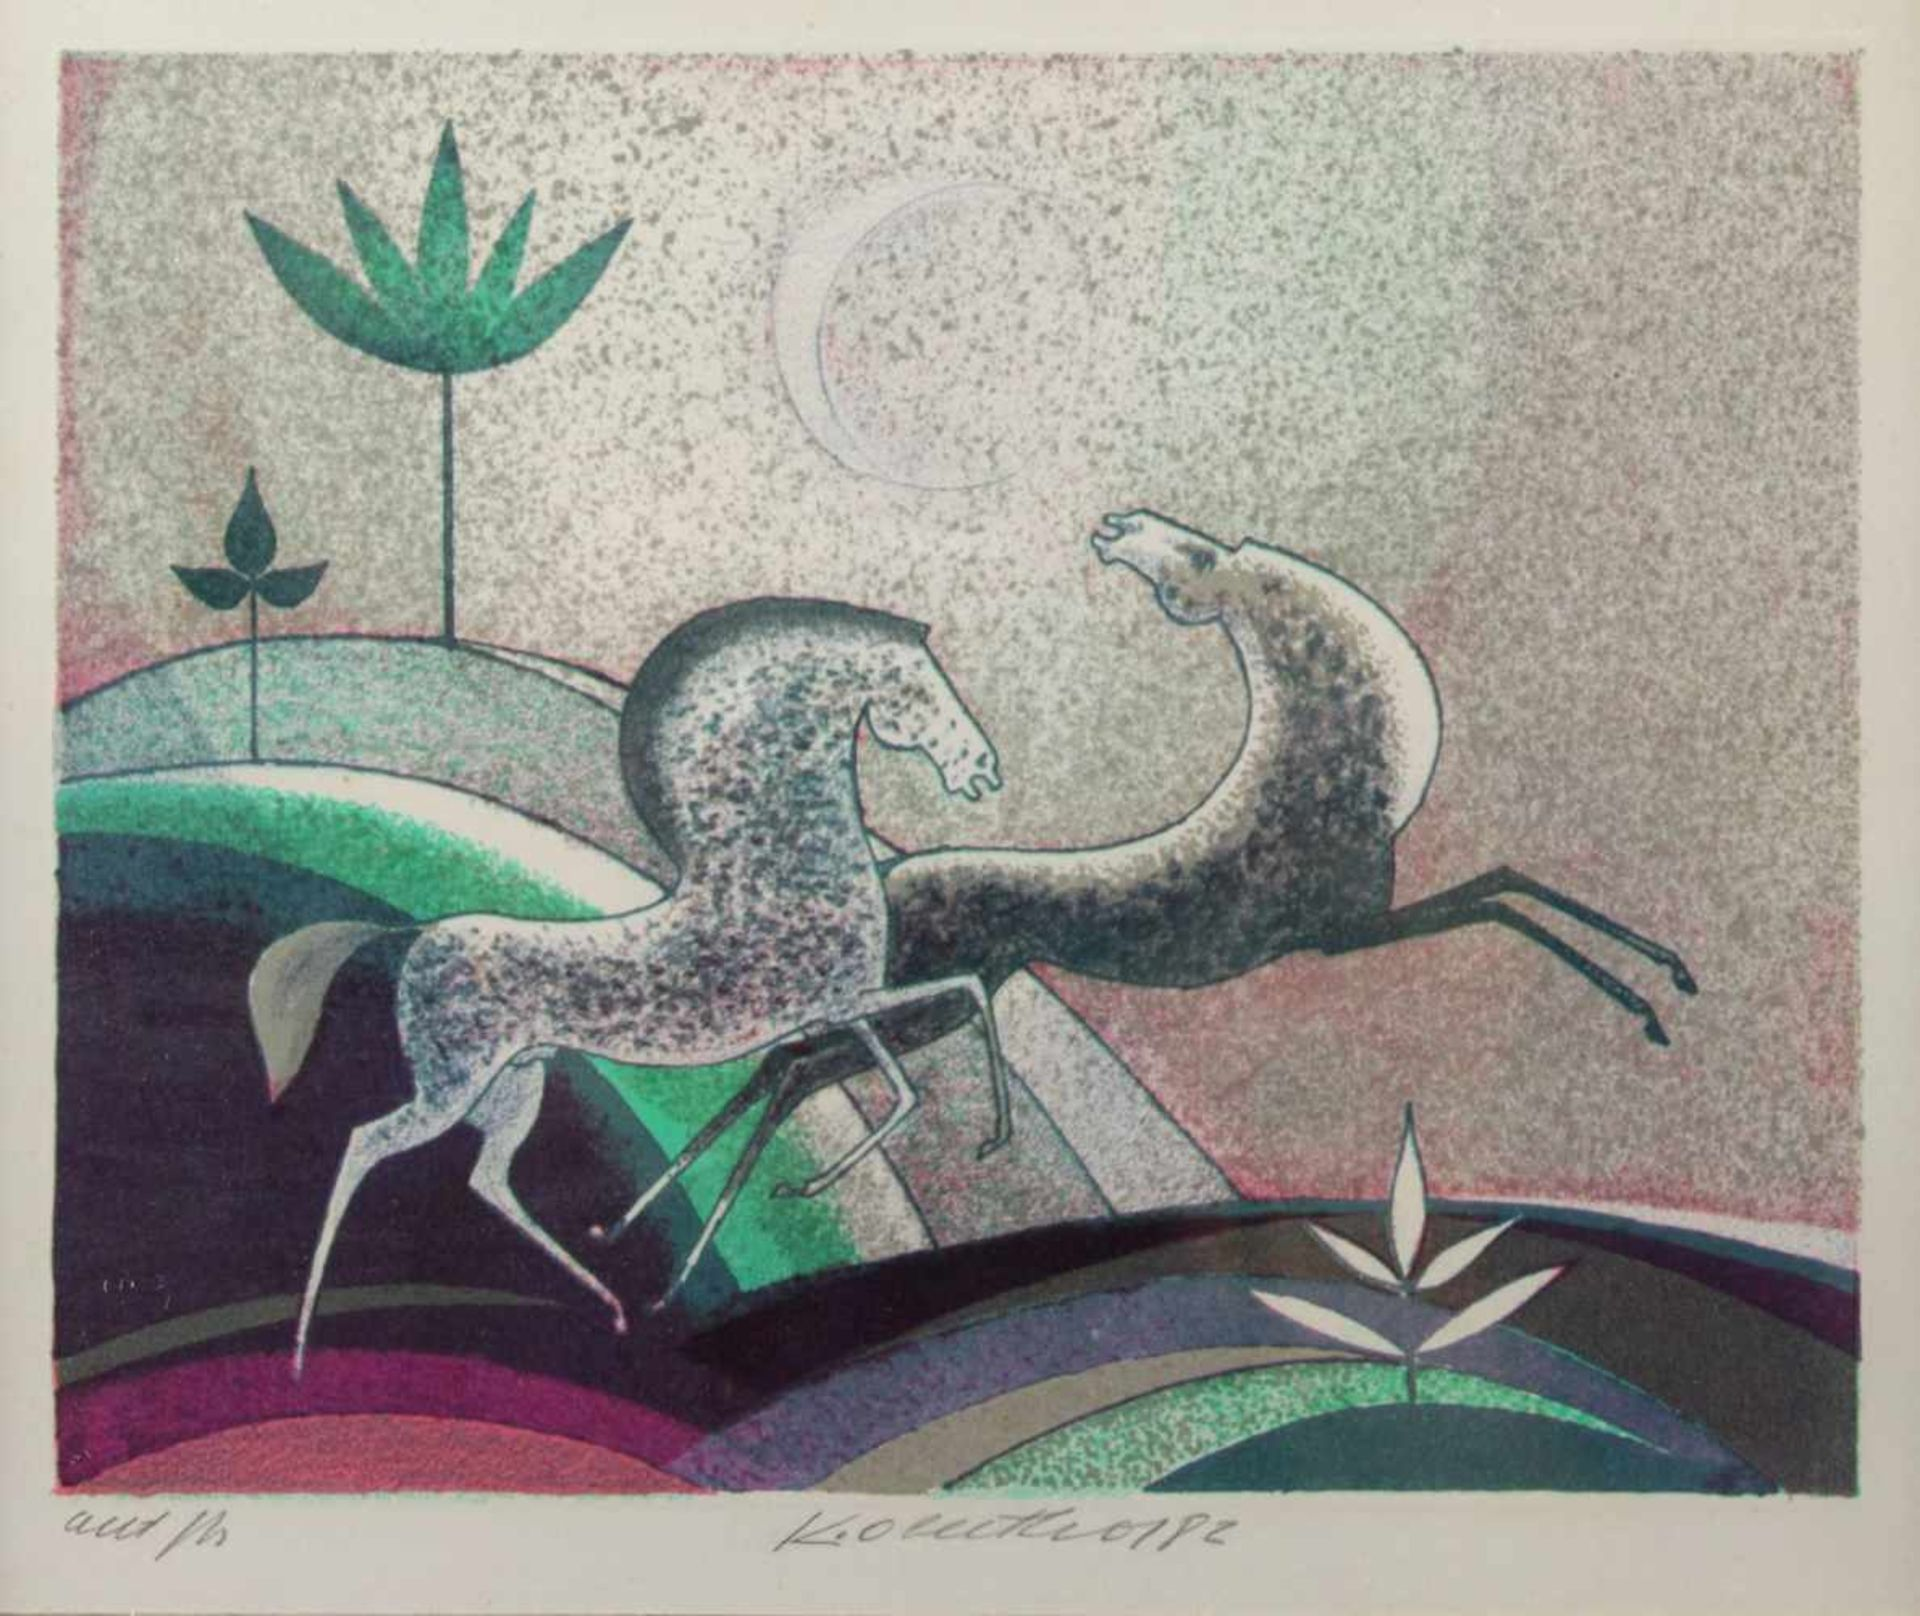 Oberthor Karel (1921 - 1996) Evening,1982, color lithograph on paper, artist, the dimensions 13.5